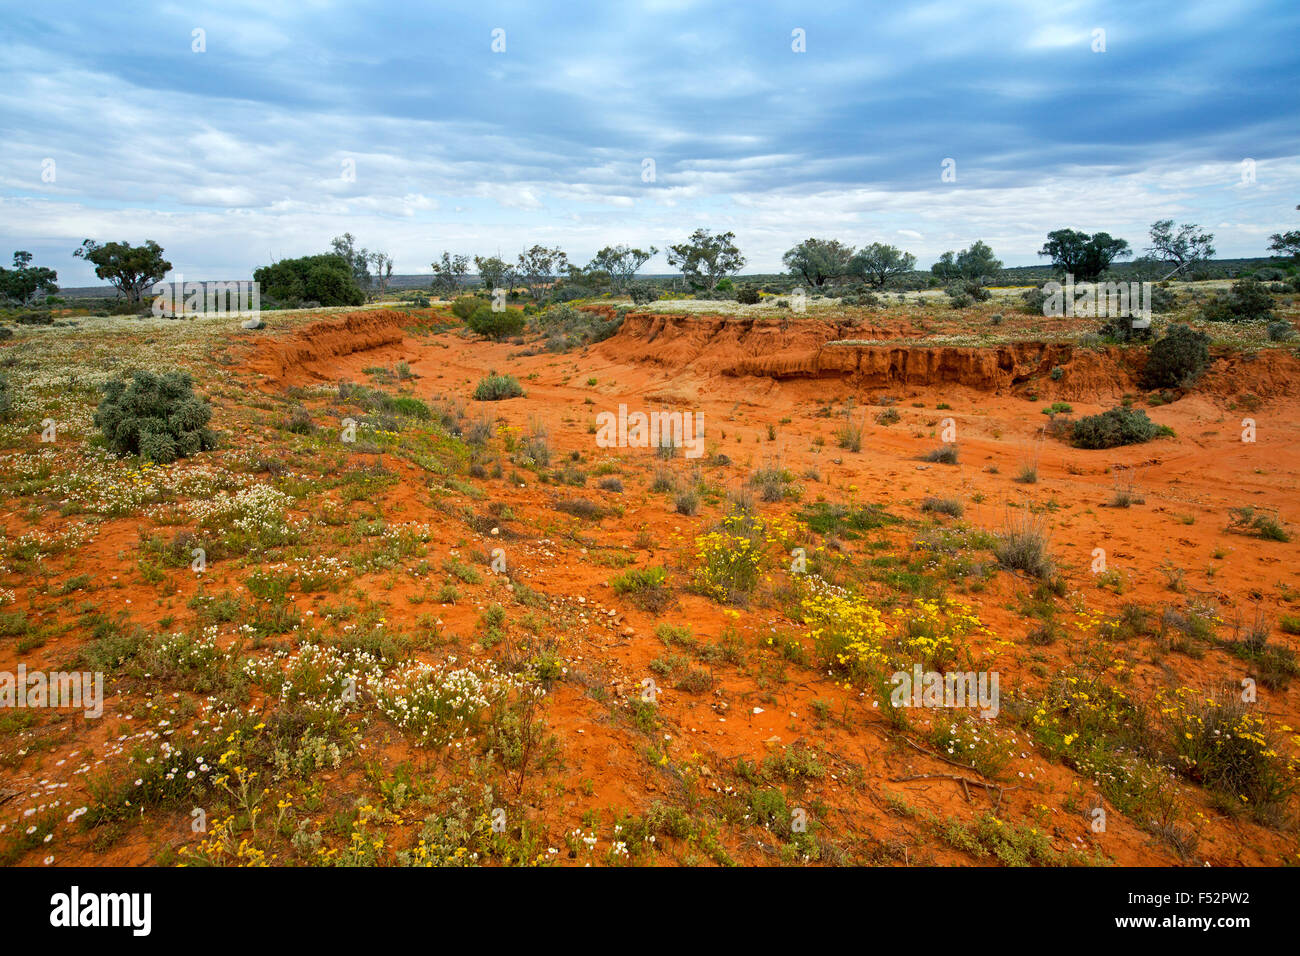 Colourful Australian outback landscape with vast red plains under blue sky carpeted with yellow & white wildflowers - Stock Image